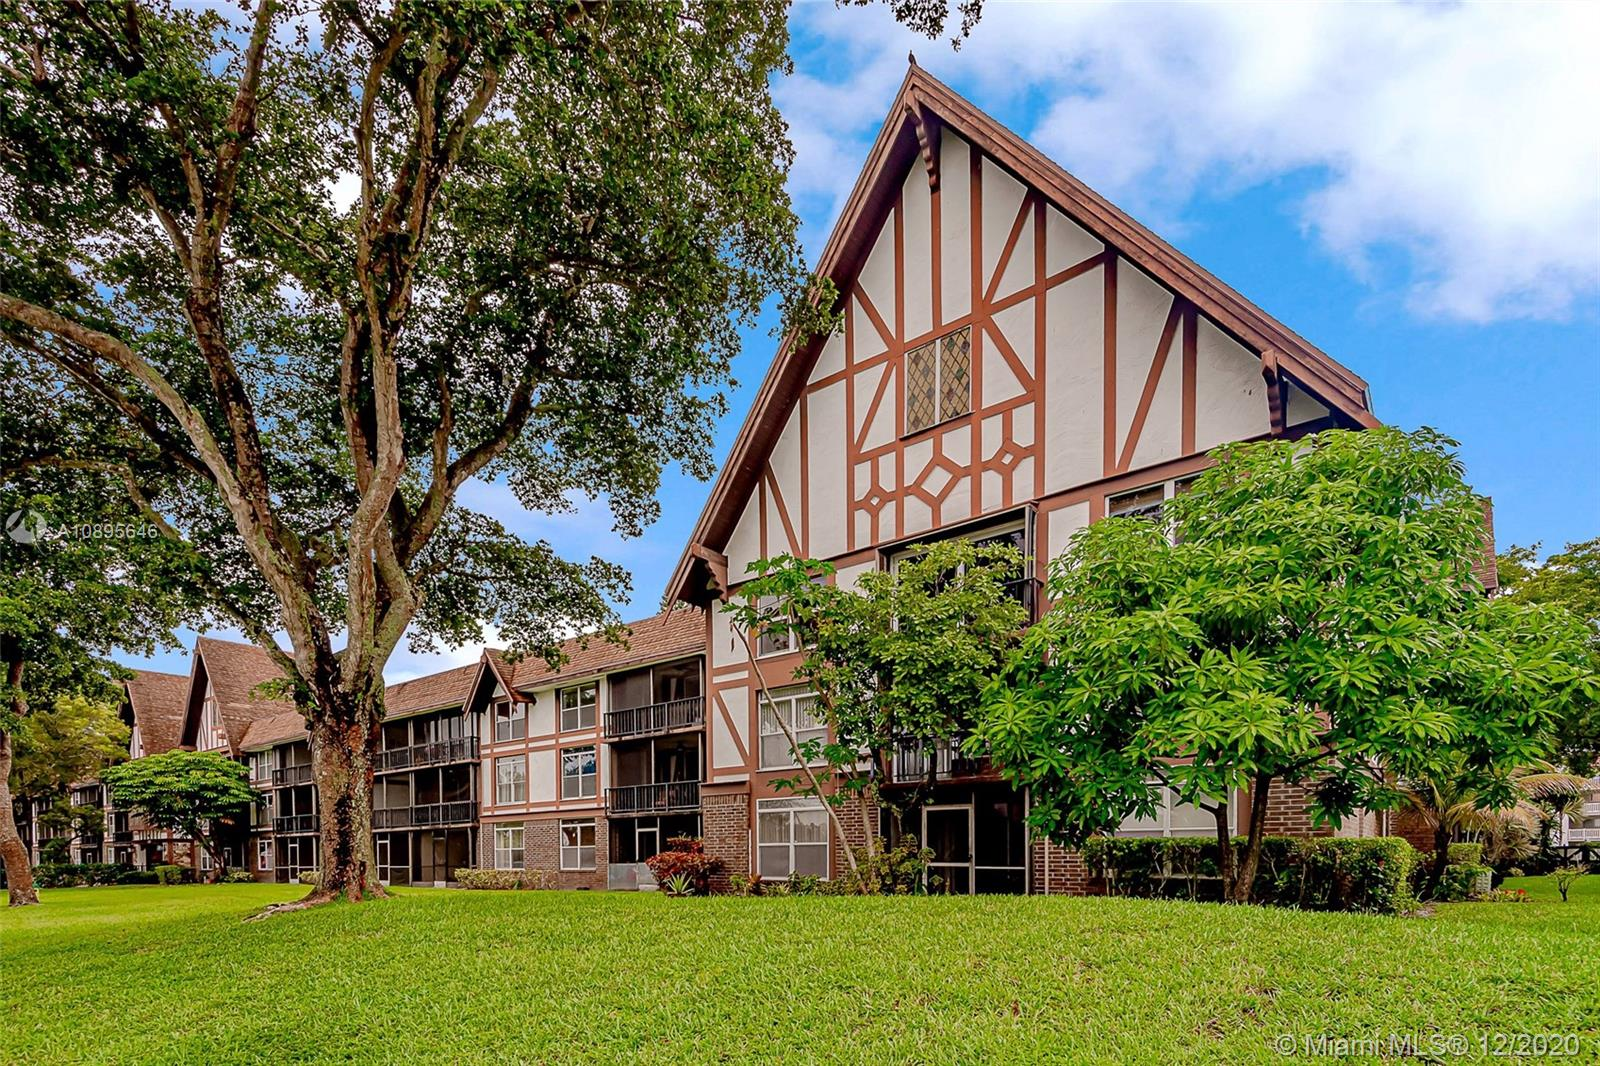 LARGE 2/2 CORNER UNIT CONDO ON THE 1ST FLOOR. SPACIOUS LIVING AND DINING AREA. UPDATED  BATHROOMS, KITCHEN FLOORING. RIGHT ACCROSS THE MAIN CLUBHOUSE. PLENTY OF CLOSET SPACE. SCREENED PATIO.